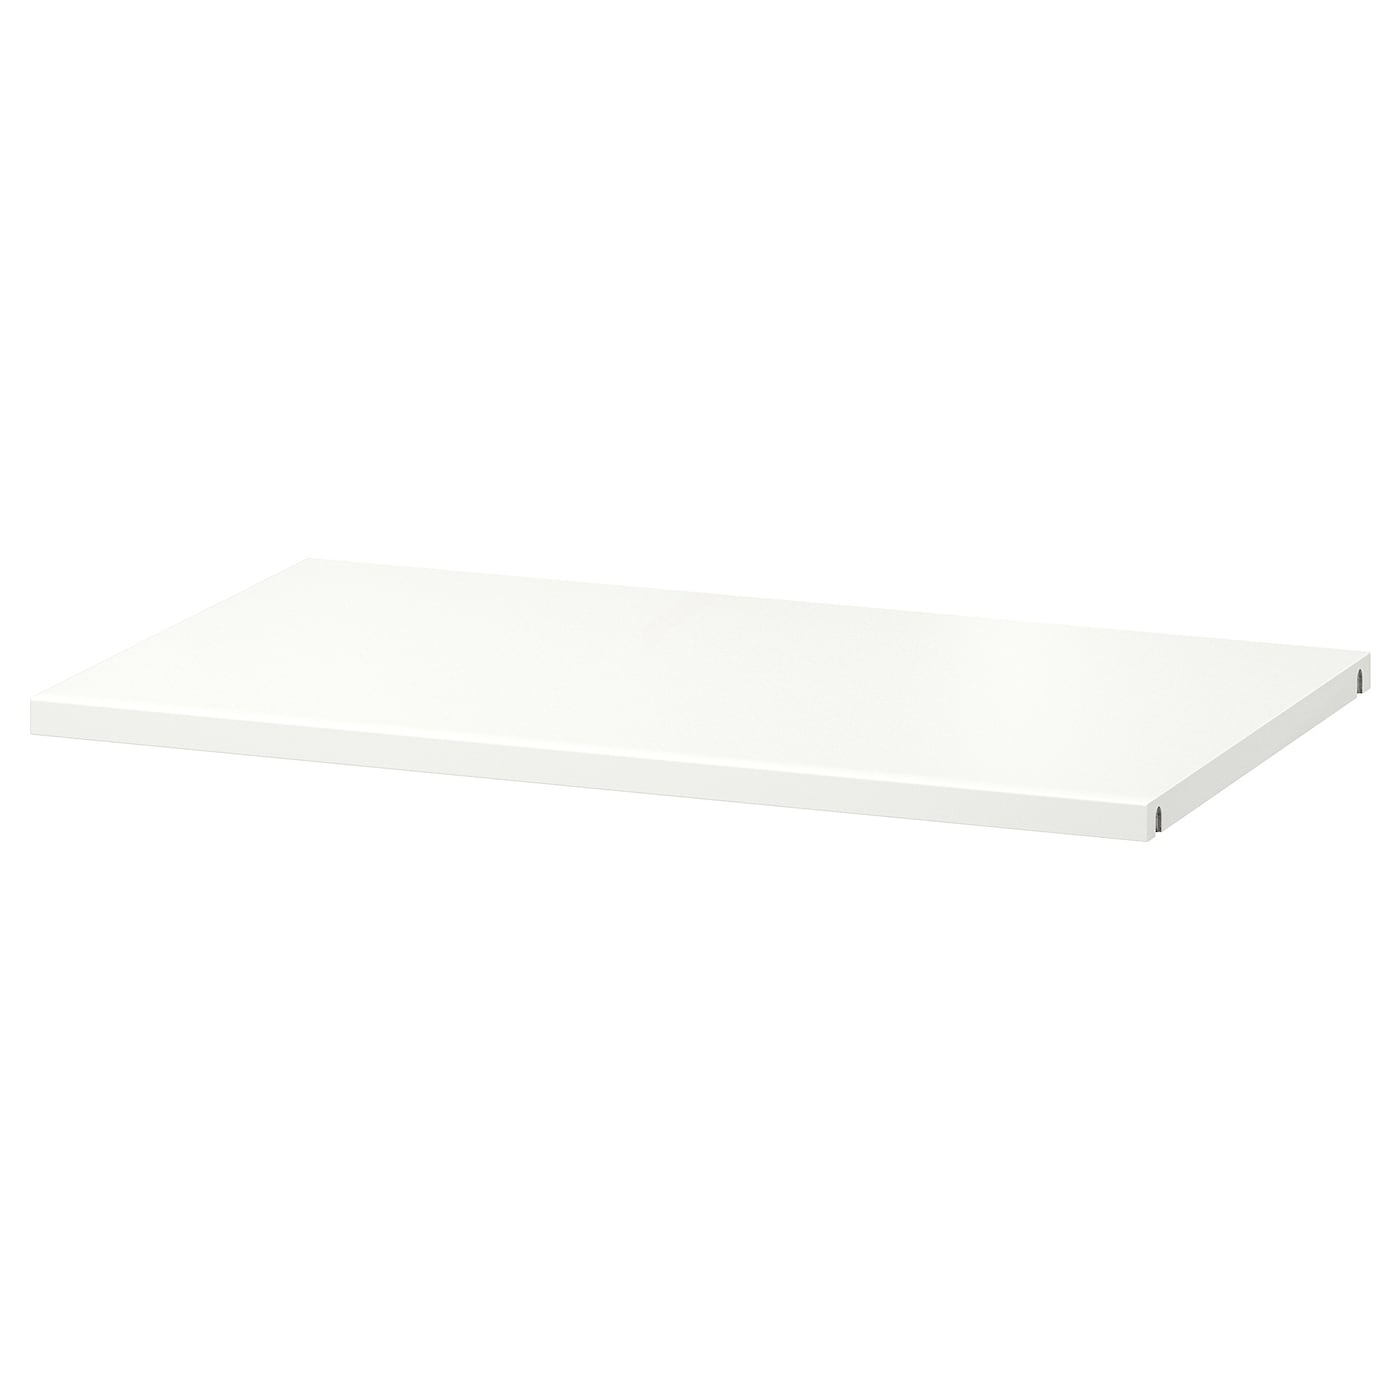 IKEA BESTÅ shelf Adjustable shelf; easy to place according to your own needs.